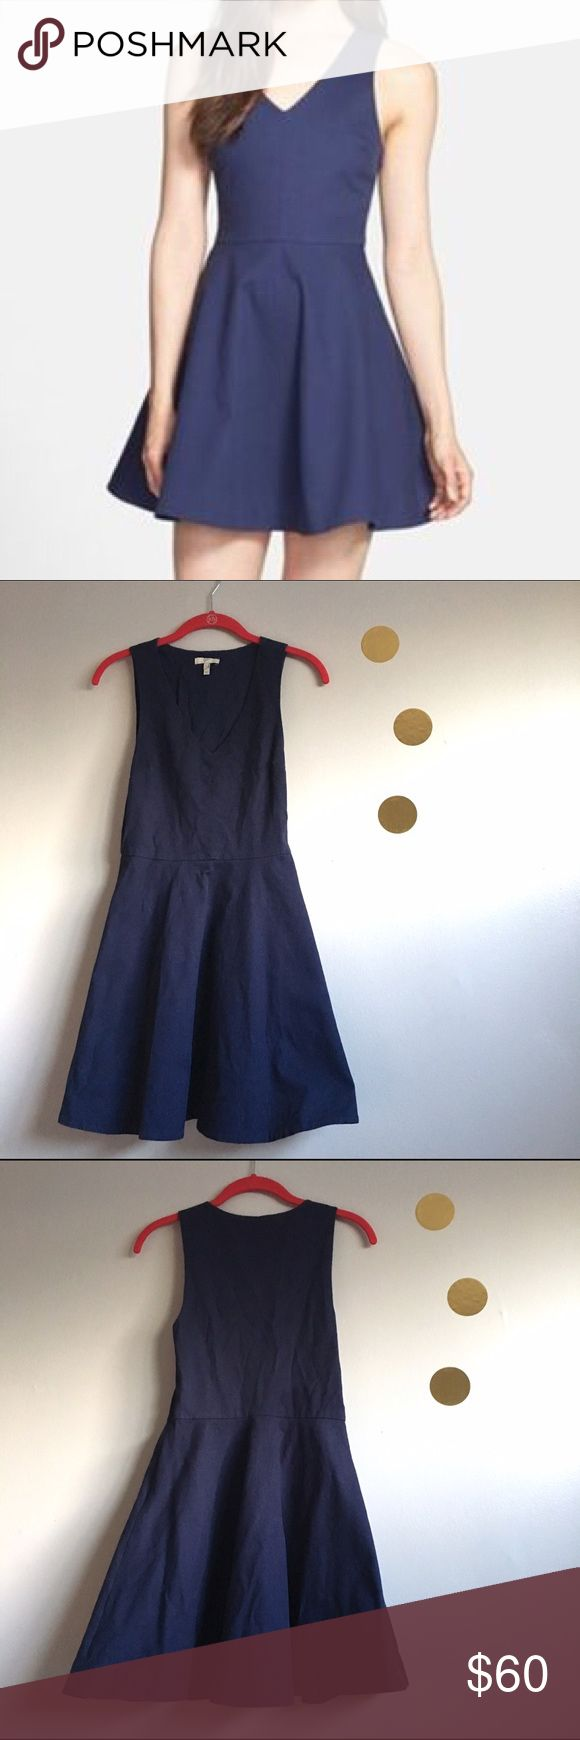 """Joie Navy Blue Norton Dress Gorgeous Joie dress! Perfect for holiday parties! Textured fabric, side zip closure. Approx. 34"""" L. May have a few dog hairs due to the textured fabric (my pup apologizes! 🐶) and needs to be ironed. Has 3 tiny pulls (last phot) that are barely noticeable. Otherwise excellent pre-loved condition!   🚫no trades 🚫no modeling ✅dog friendly/🚭smoke free home ✅reasonable offers ✅bundle & save! Joie Dresses"""